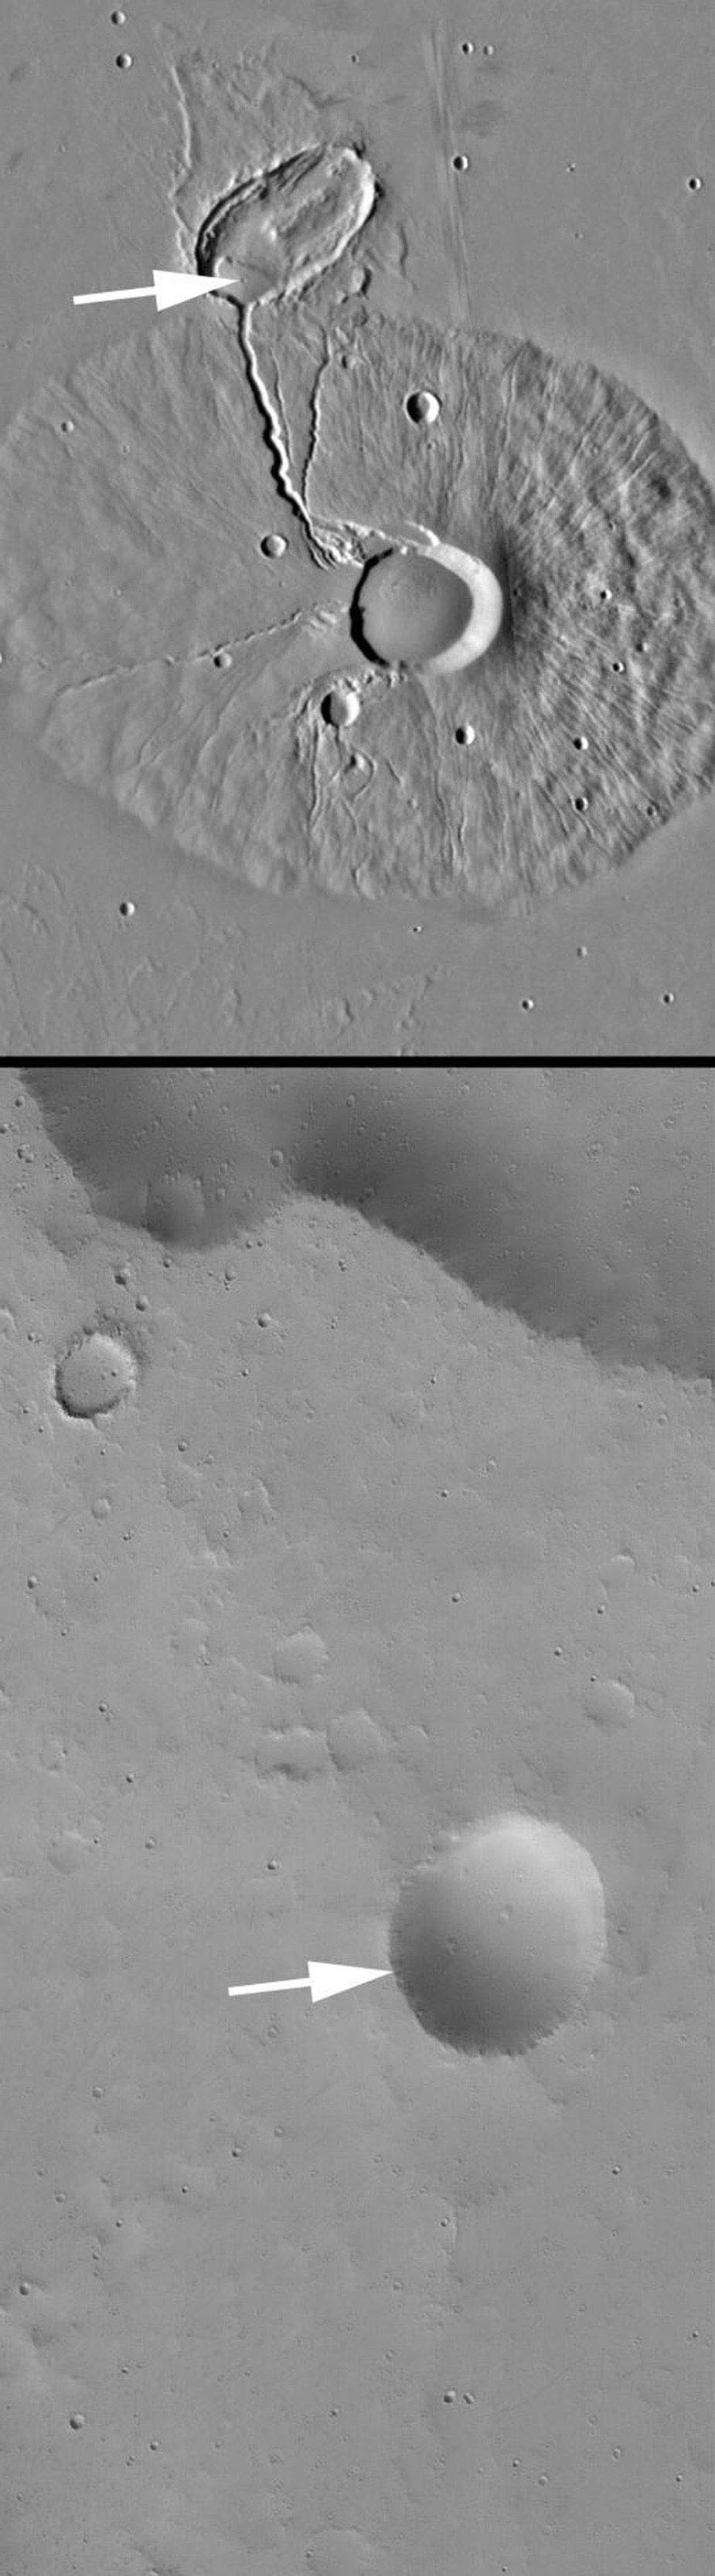 NASA's Mars Global Surveyor shows Ceraunius Tholus, a volcano in the Tharsis region on Mars. Several channels run down the slope of the Ceraunius Tholus volcano. The deepest of those channels ends in an elliptical crater.